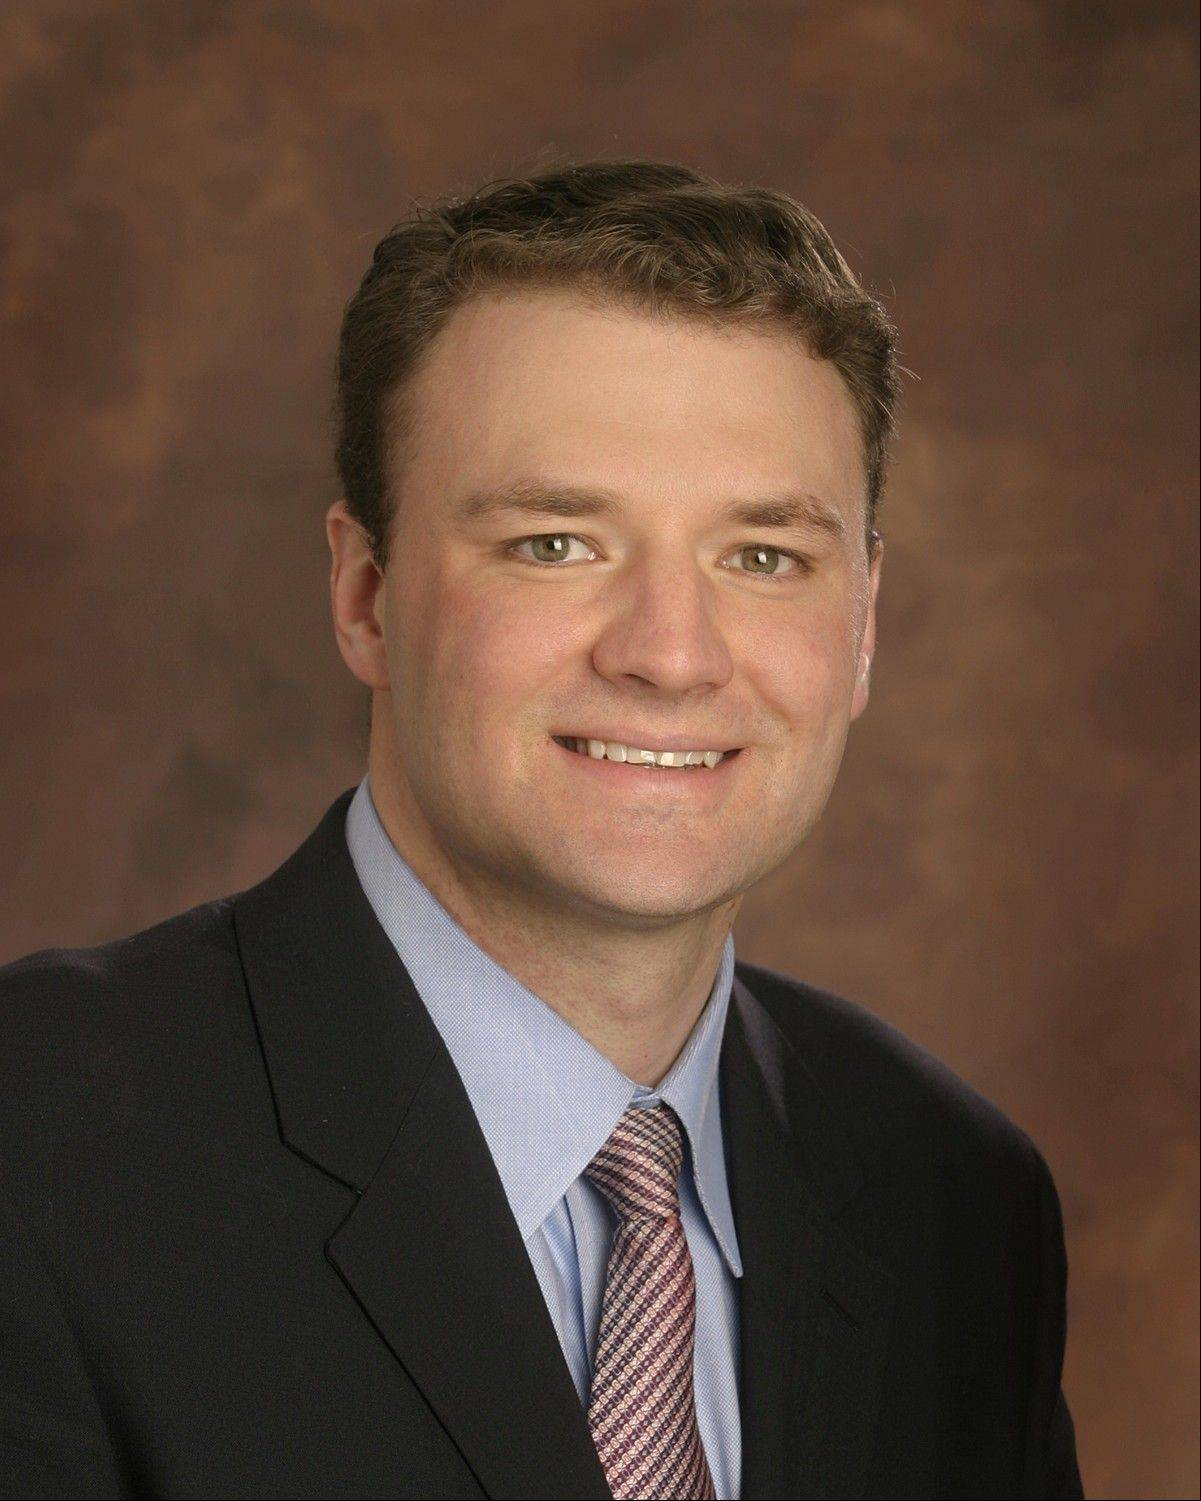 DuPage transportation planner named to Metra board